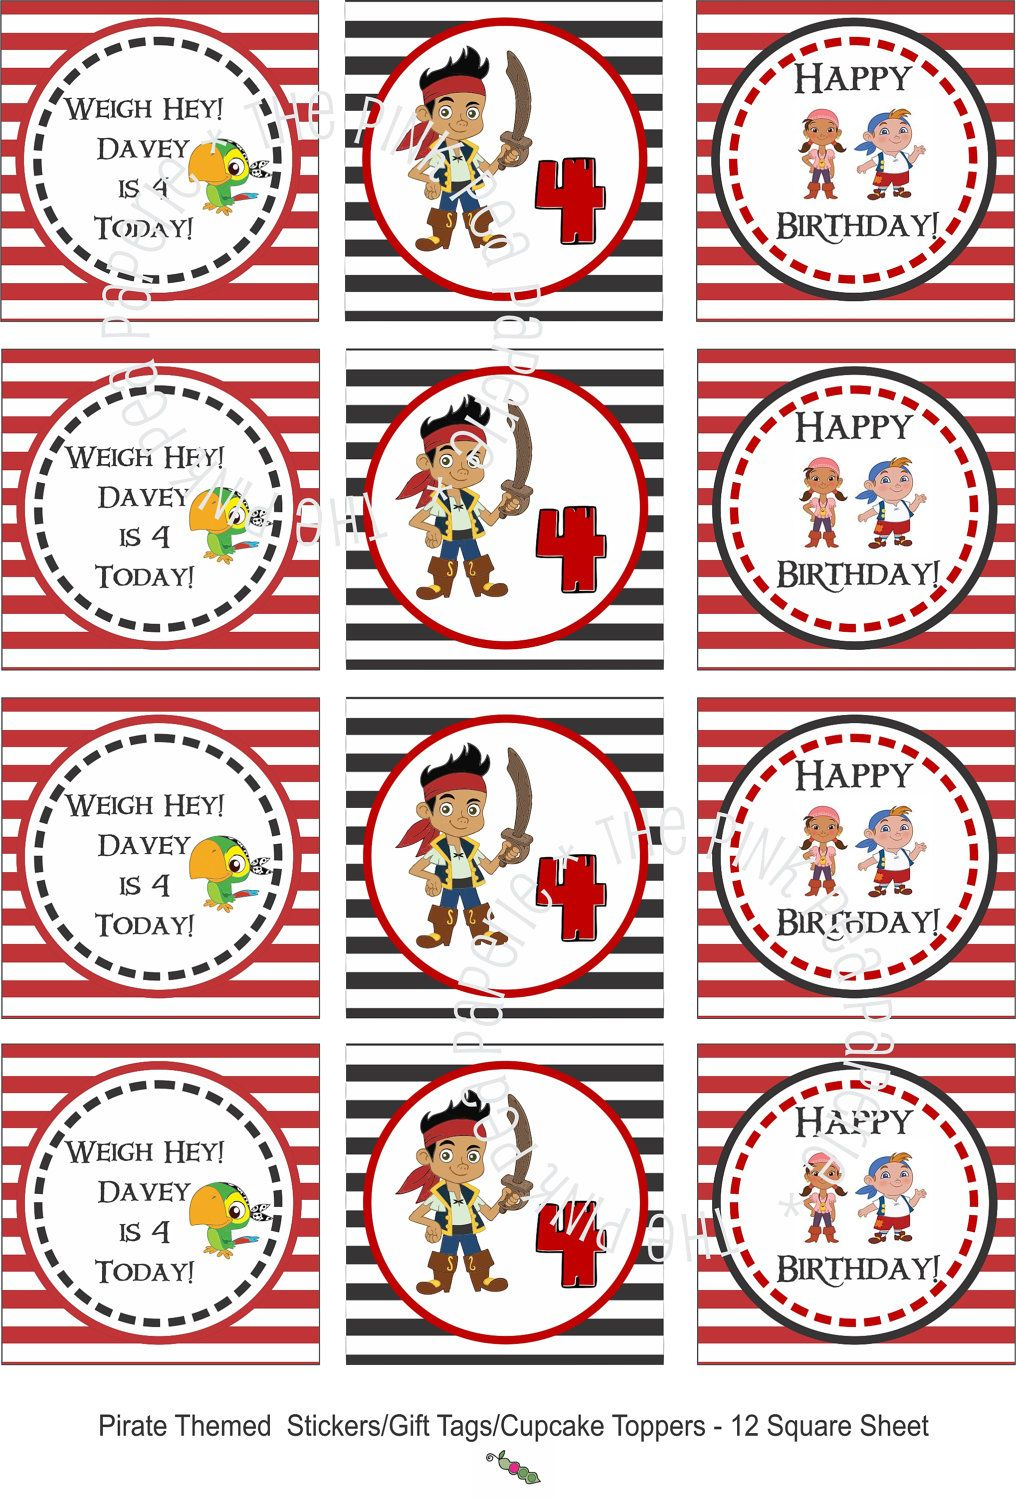 Jake and the neverland pirates treasure chest printable - Custom Printable Jake And The Neverland Pirates Stickers Or Gift Tags